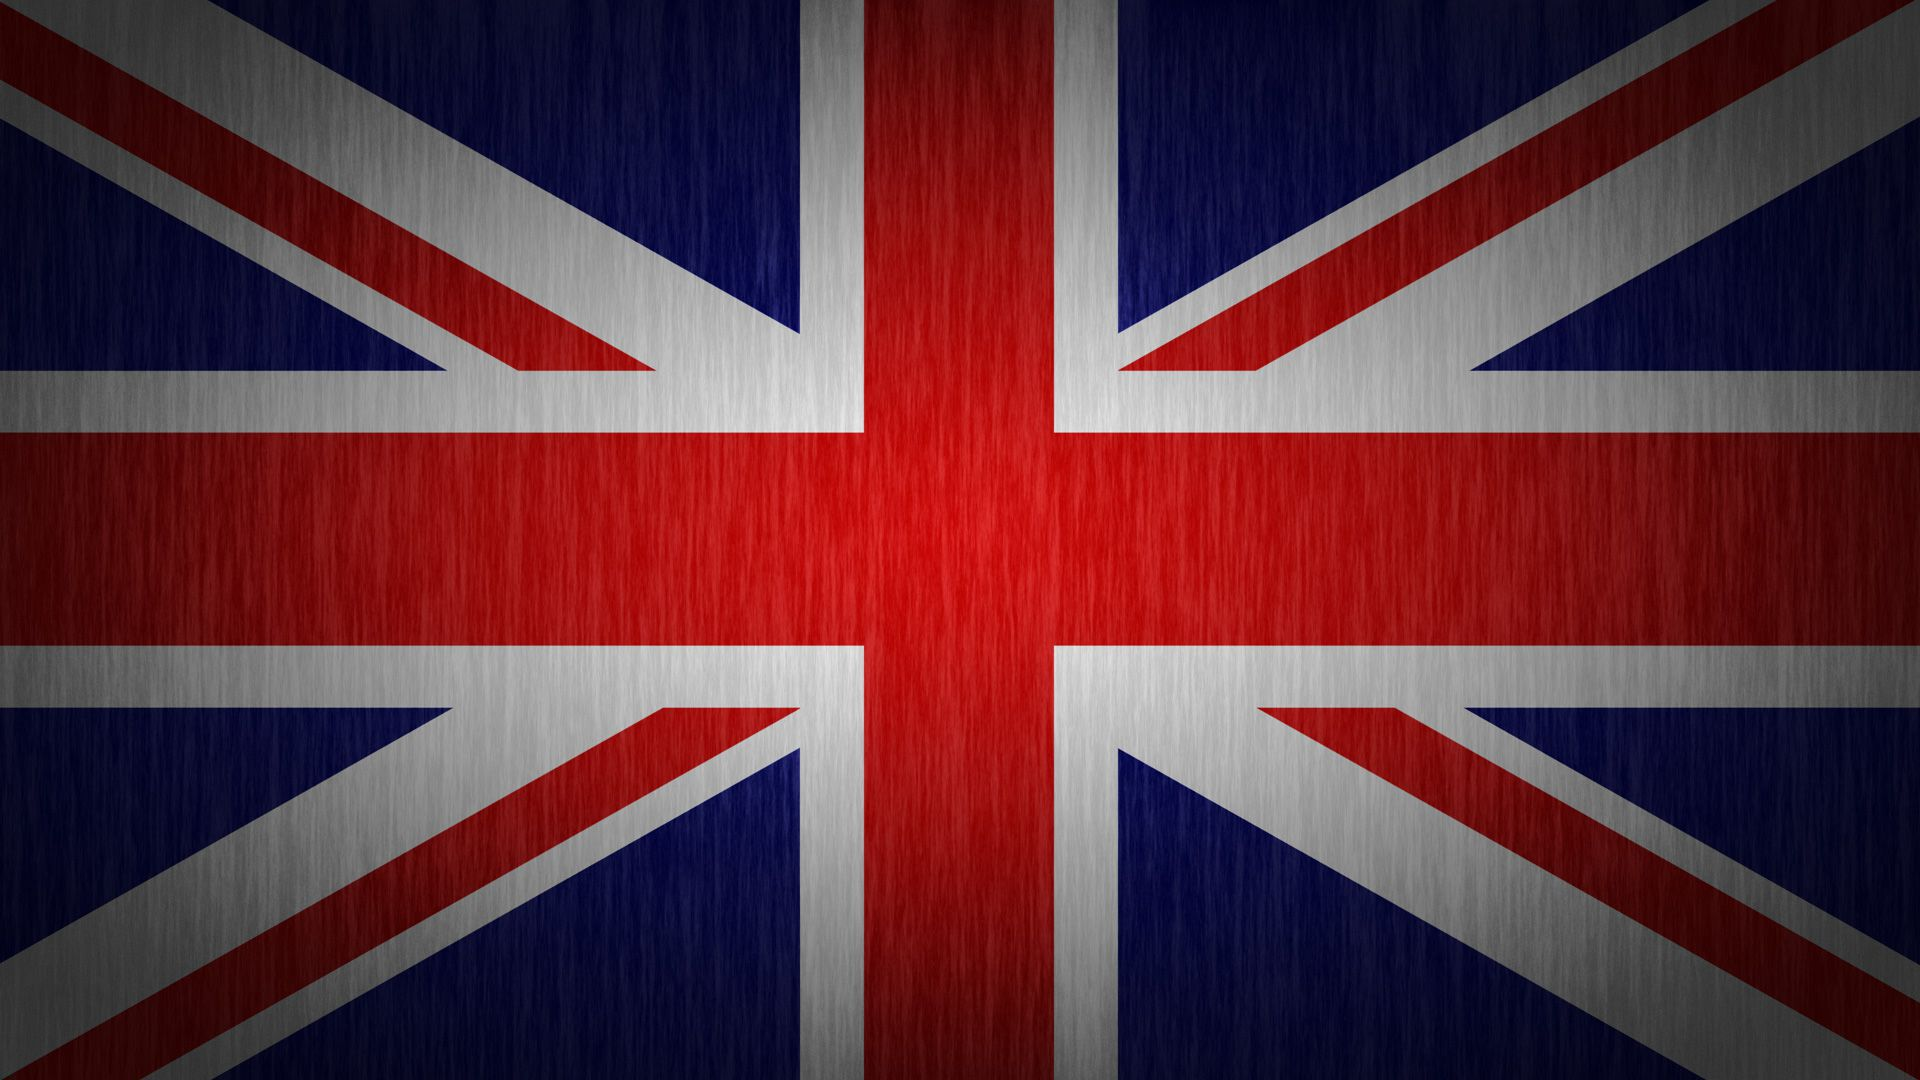 British Flag In High Resolution